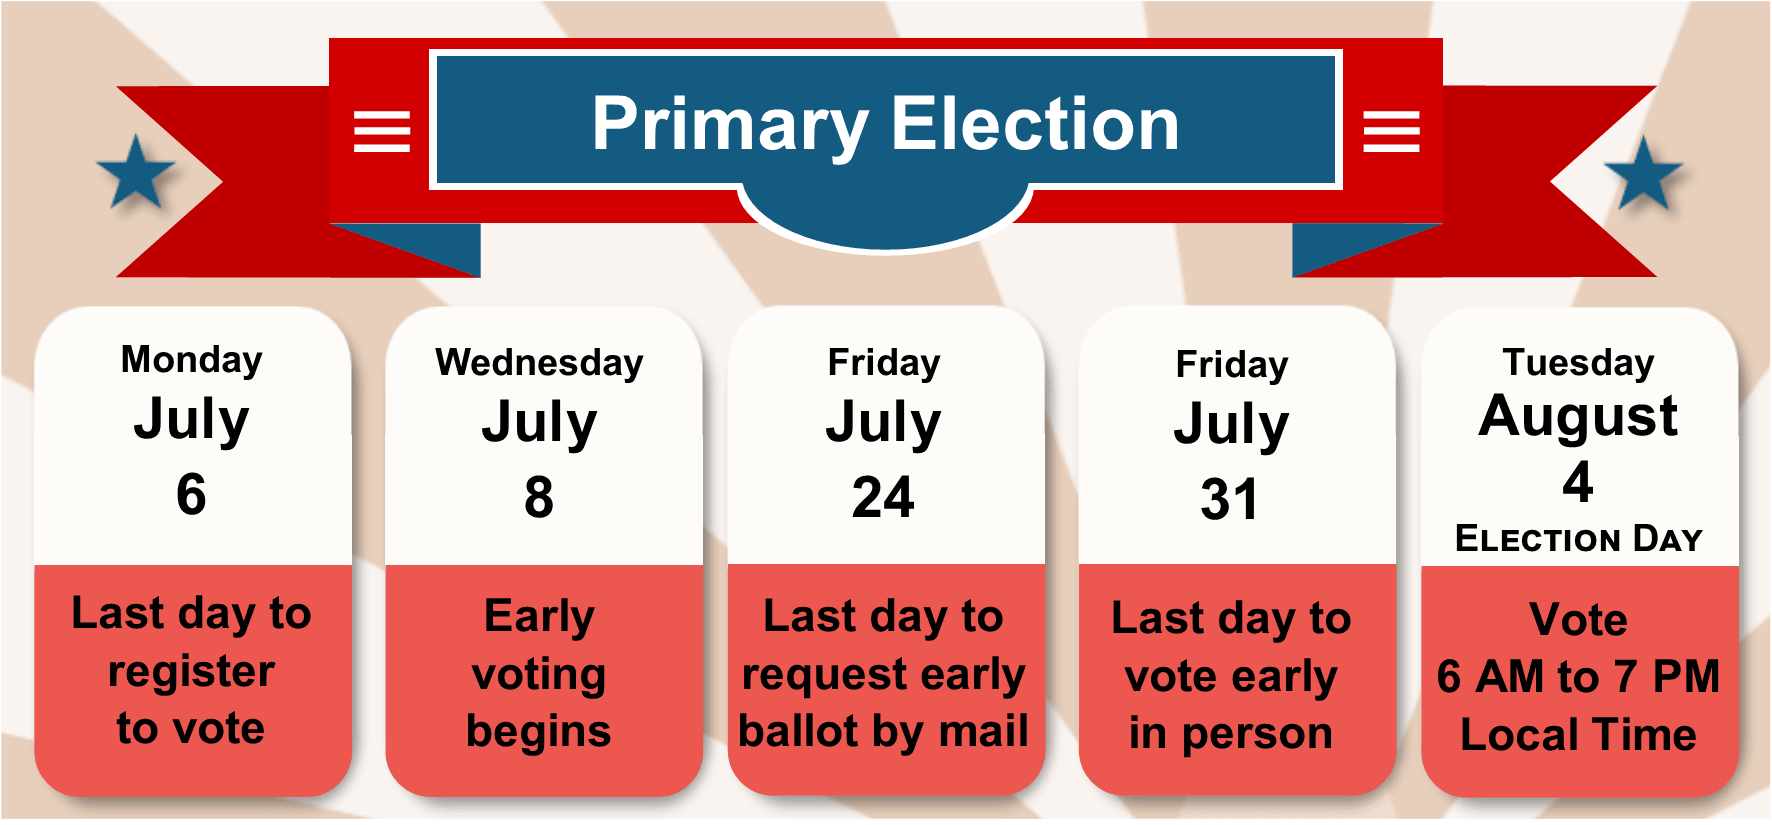 A calendar of important dates leading up to the Primary Election Opens in new window